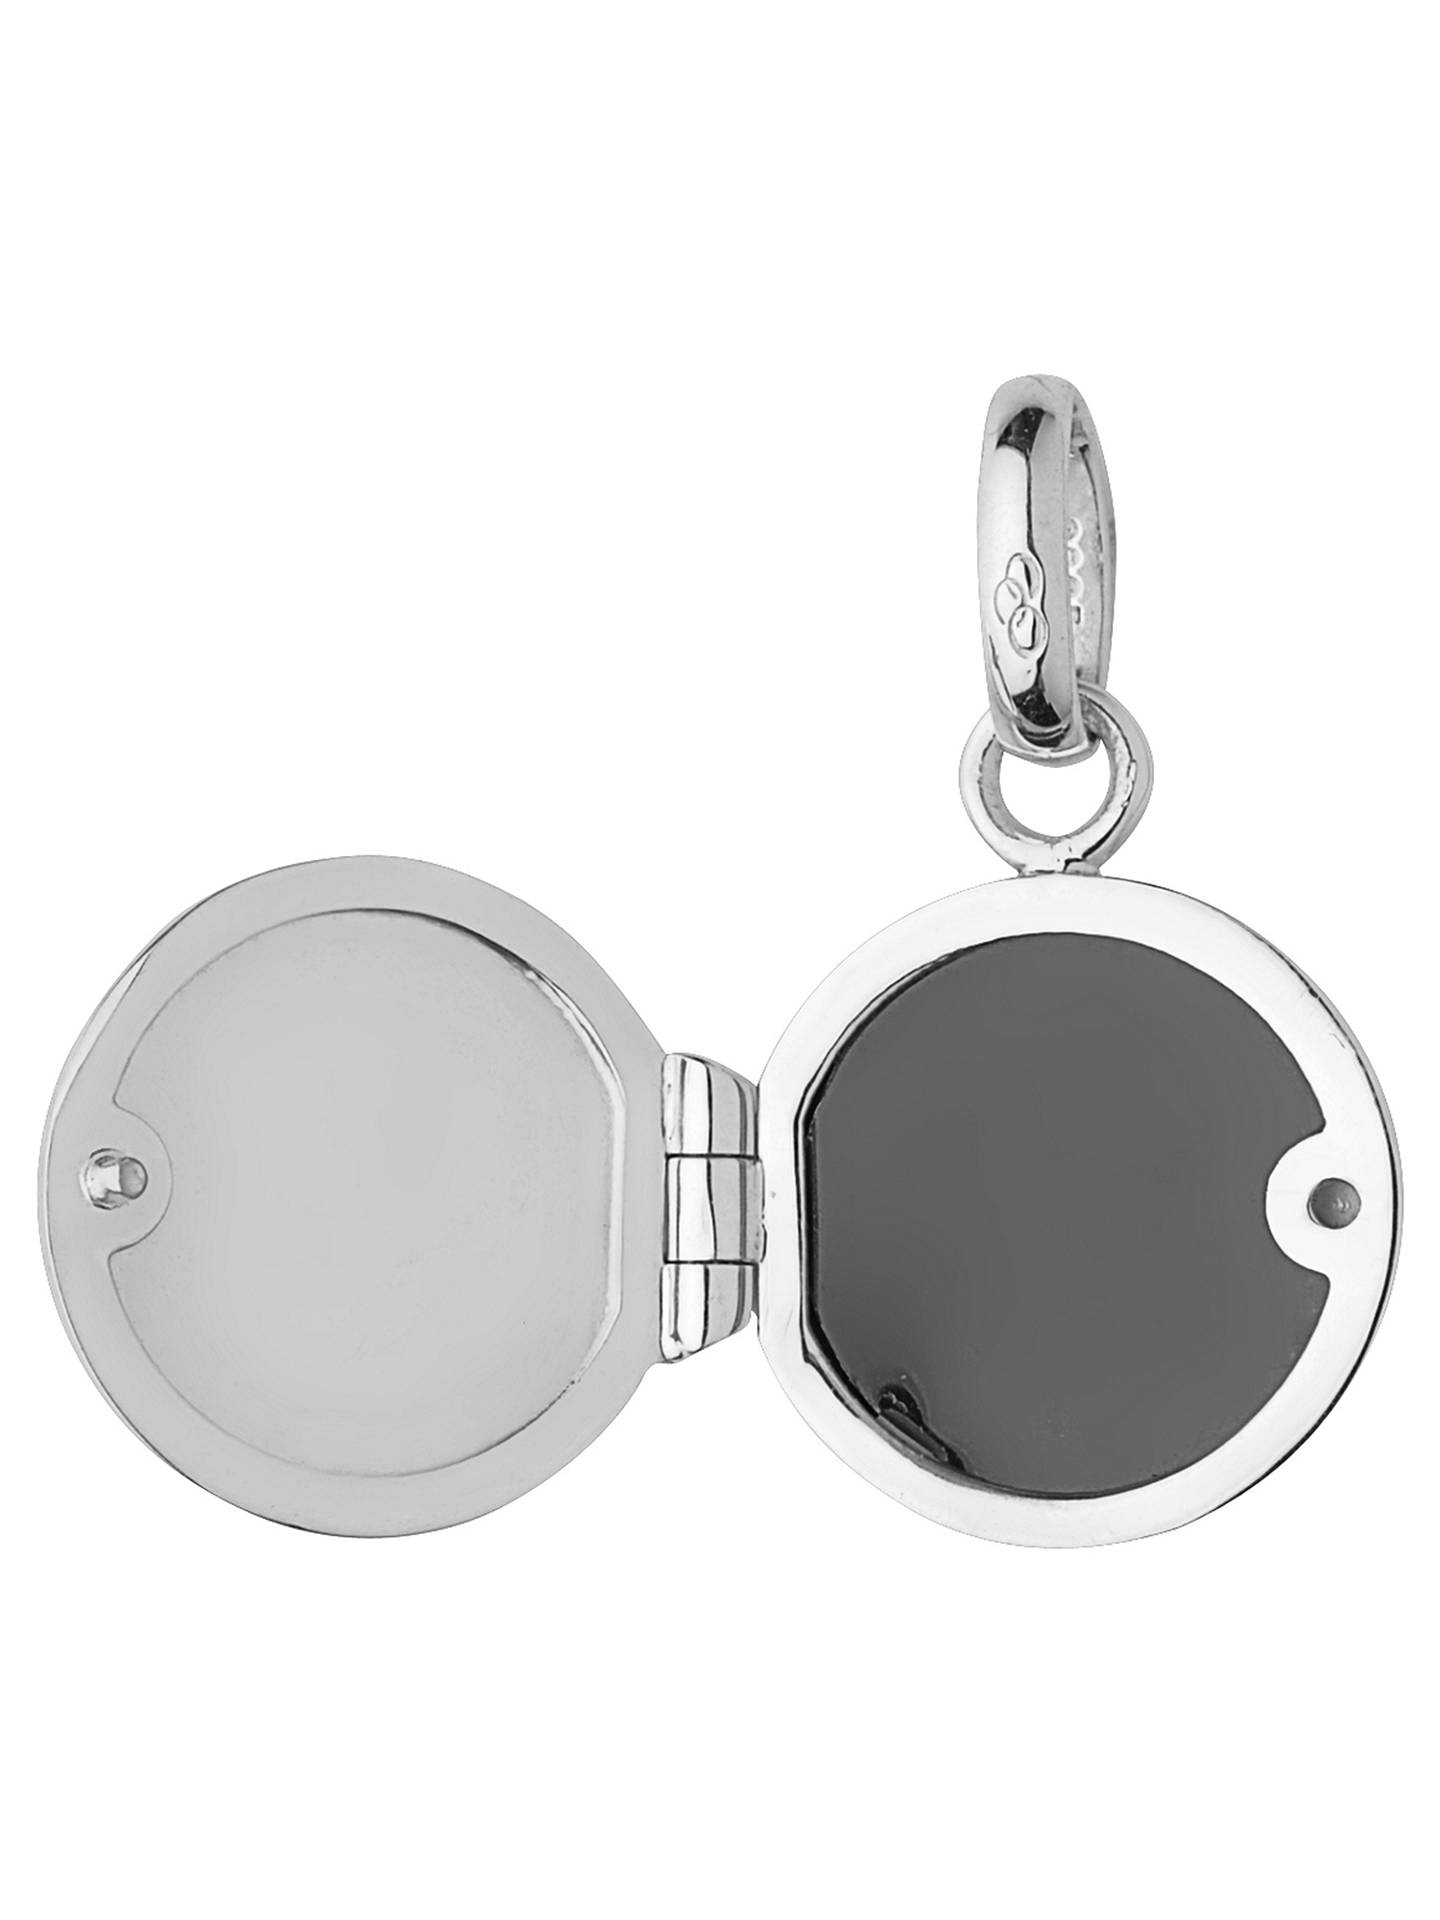 BuyLinks of London Sterling Silver Mini Locket Charm, Silver Online at johnlewis.com